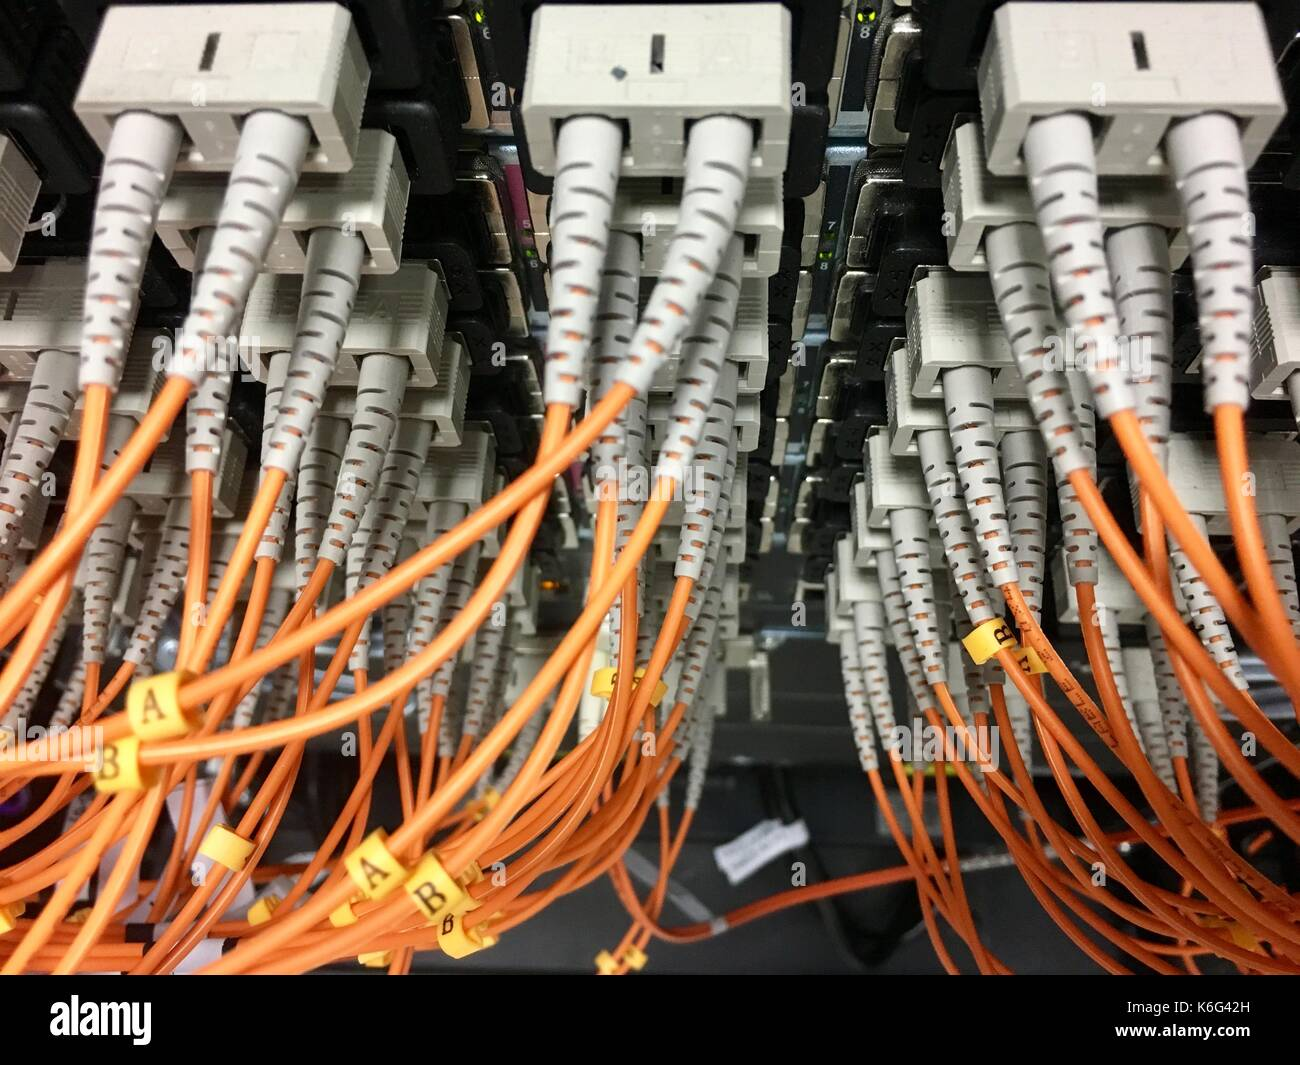 Fiber Optic Cable Stock Photos & Fiber Optic Cable Stock Images - Alamy